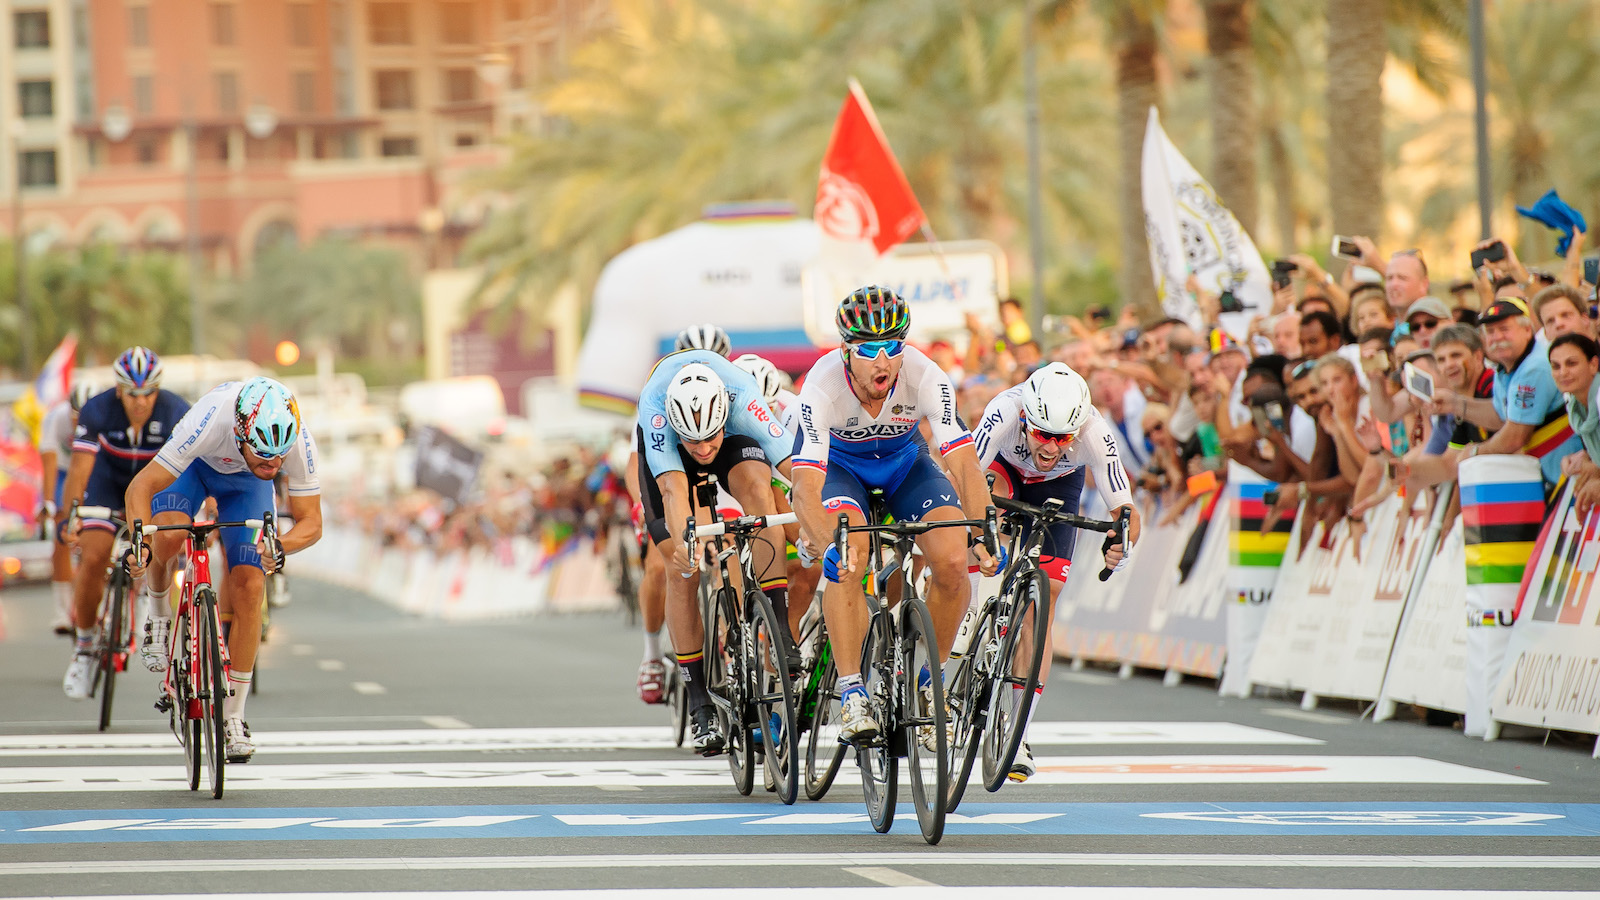 """Chentil Mohan, India. """"Defending his Rainbow Jersey at 2016 UCI Worlds in Doha, Peter Sagan pipped Boonen and a wheelie popping Cav to his second World title."""" DSLR. @sports_anonymous"""